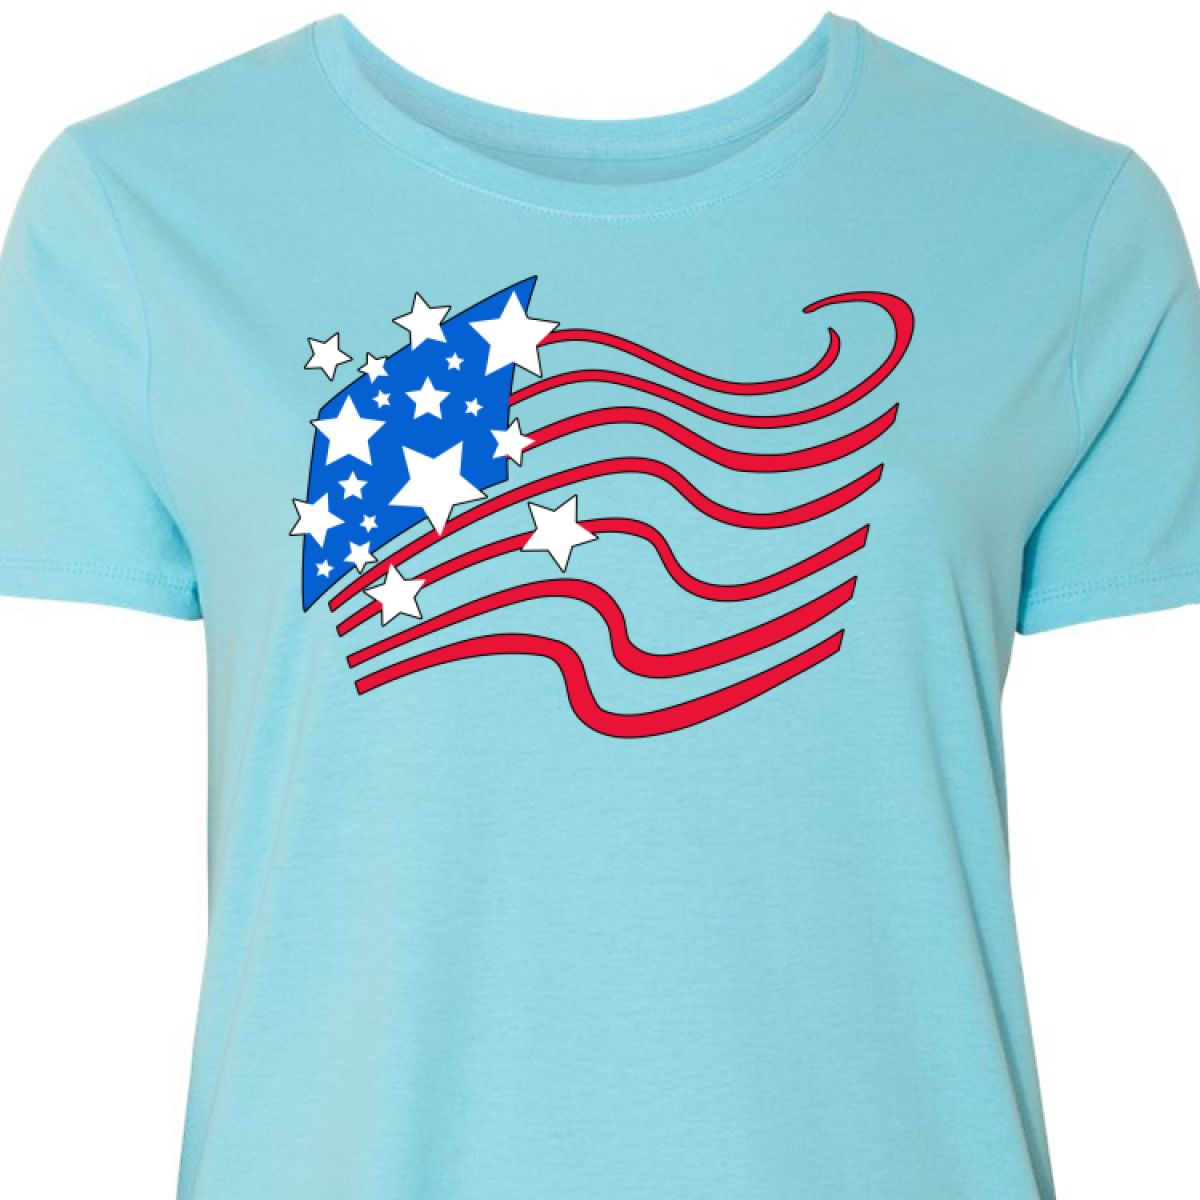 18a2ff5a2c1 Inktastic Stylized American Flag Fourth Of July Women s Plus Size T ...